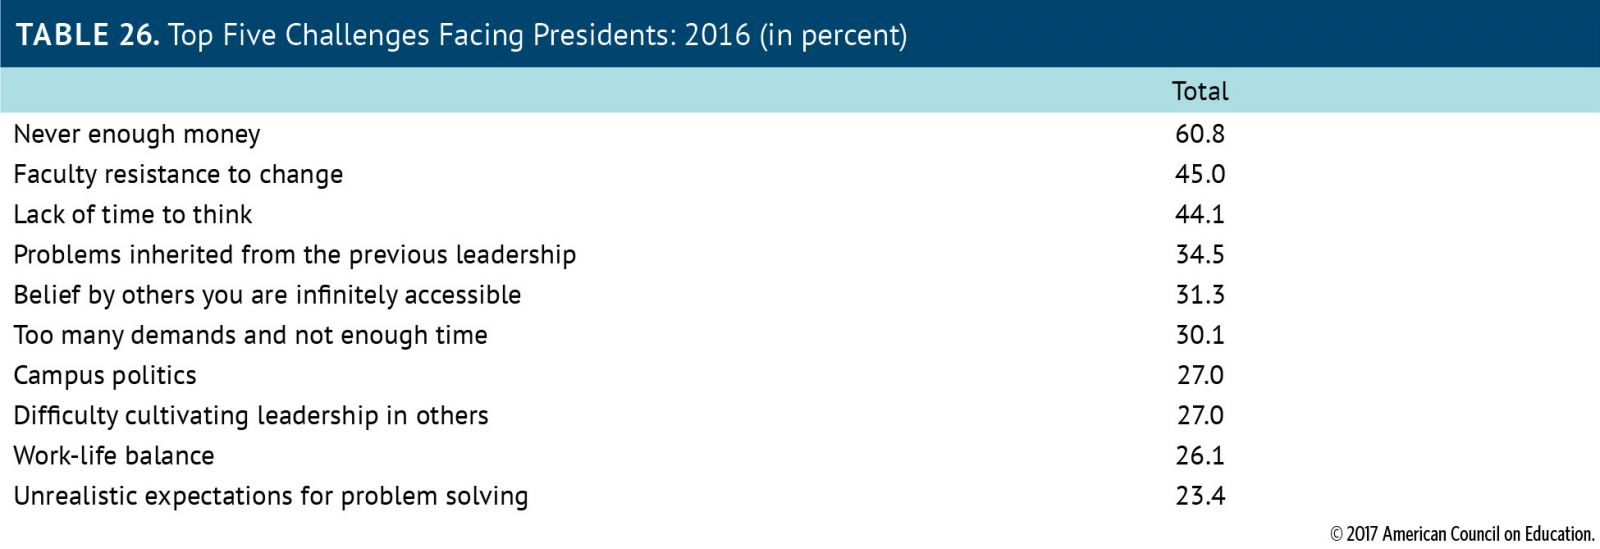 Chart: Top Five Challenges Facing Presidents, 2016 (in percentages): Never enough money, 60.8 percent; Faculty resistance to change, 45 percent; Lack of time to think, 44.1 percent; Problems inherited from the previous leadership, 34.5 percent; Belief by others you are infinitely accessible, 31.3 percent; Too many demands and not enough time, 30.1 percent; Campus politics, 27 percent; Difficulty cultivating leadership in others, 27 percent; Work-life balance, 26.1 percent; Unrealistic expectations for problem solving, 23.4 percent.